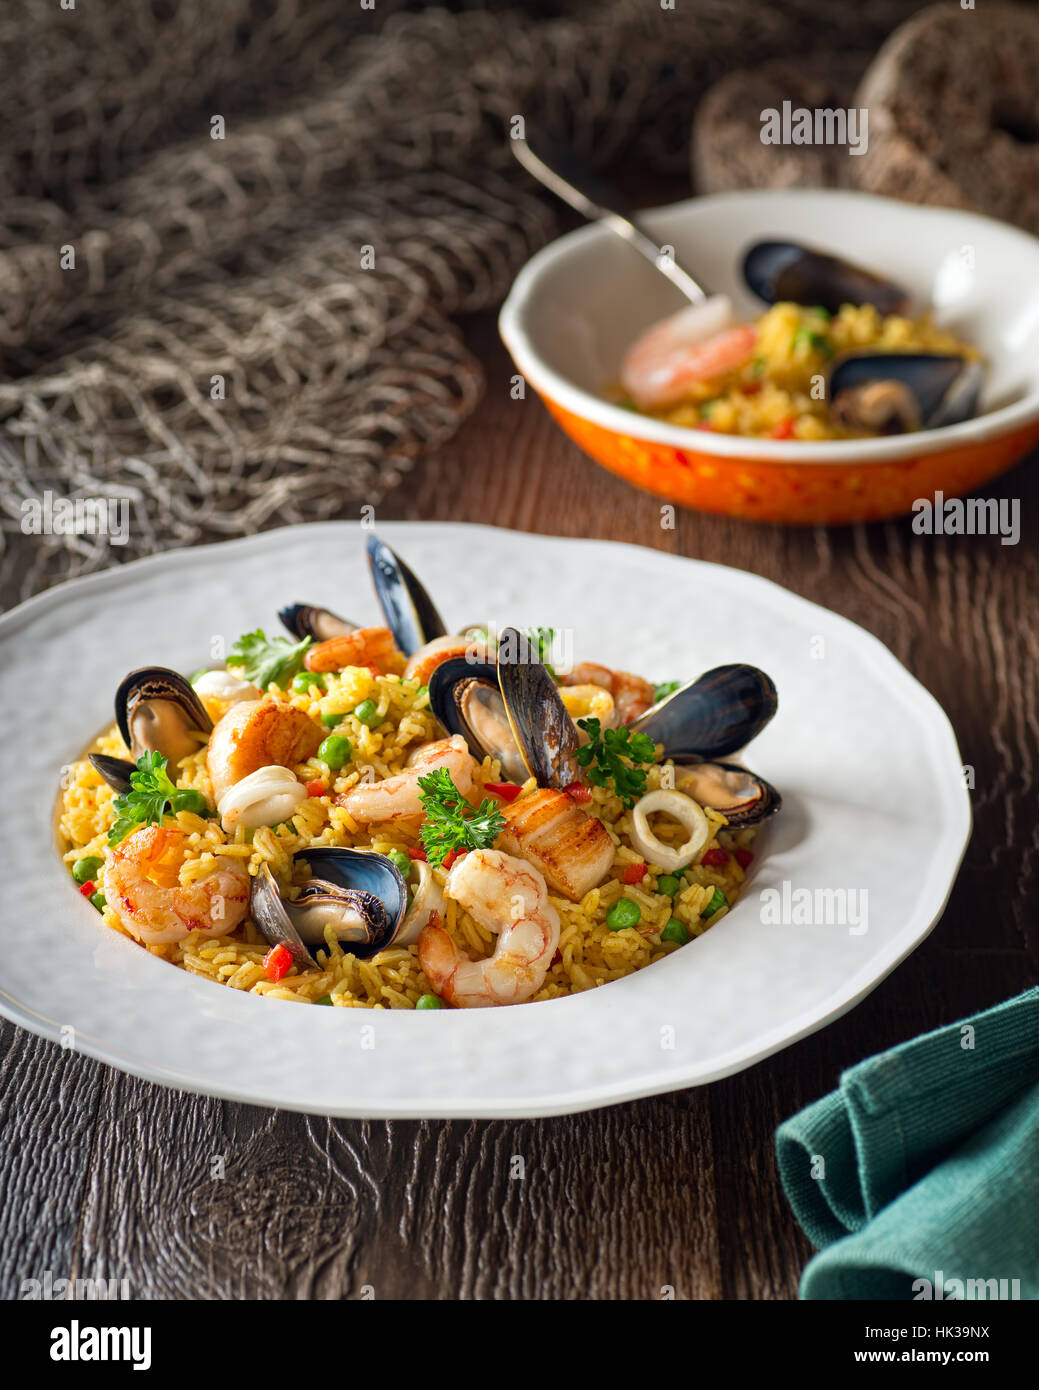 A bowl of delicious seafood and rice with shrimp, scallops, mussels, and calamari rings. - Stock Image